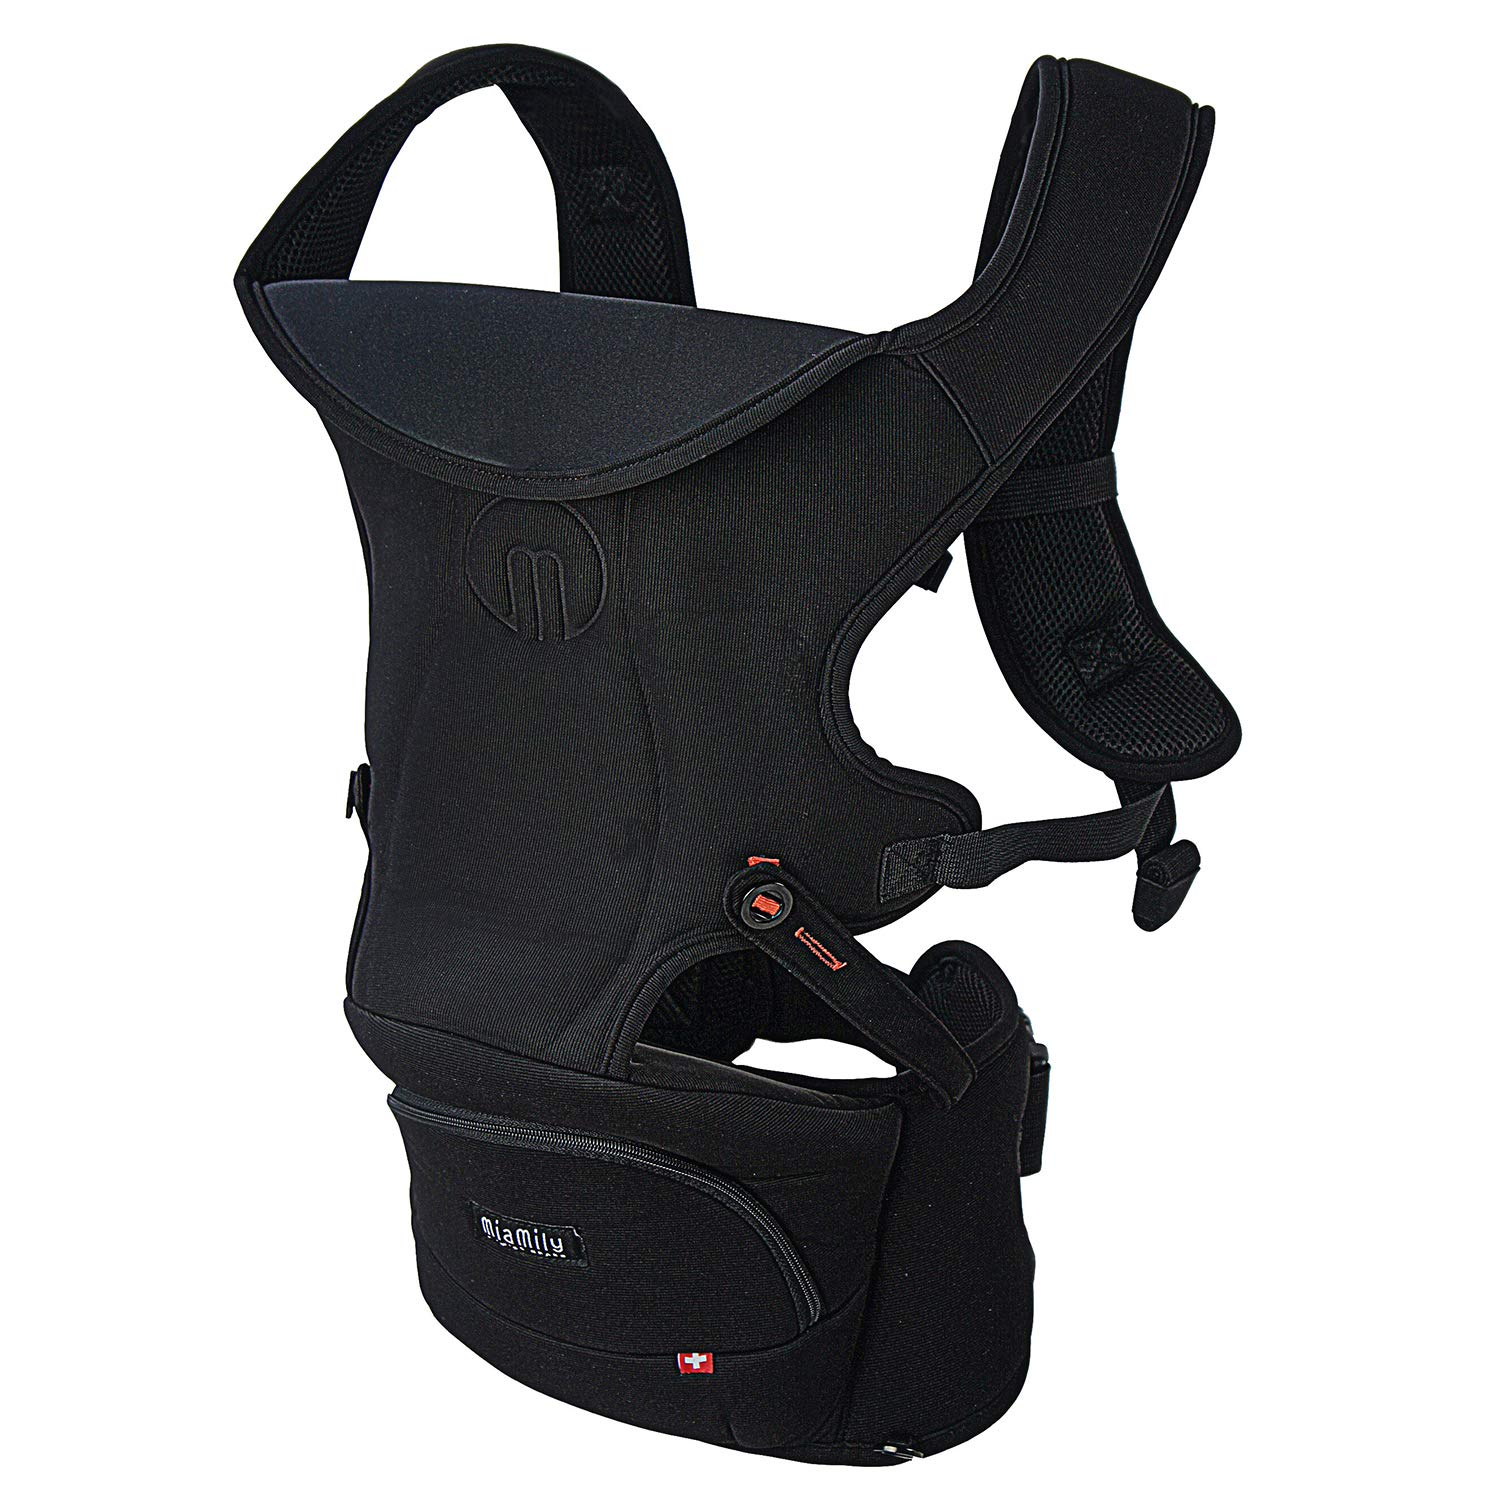 MiaMily Hipster Essential Forward-Facing Baby Carrier with 3-Carry Options and Compact Storage Compartment Black